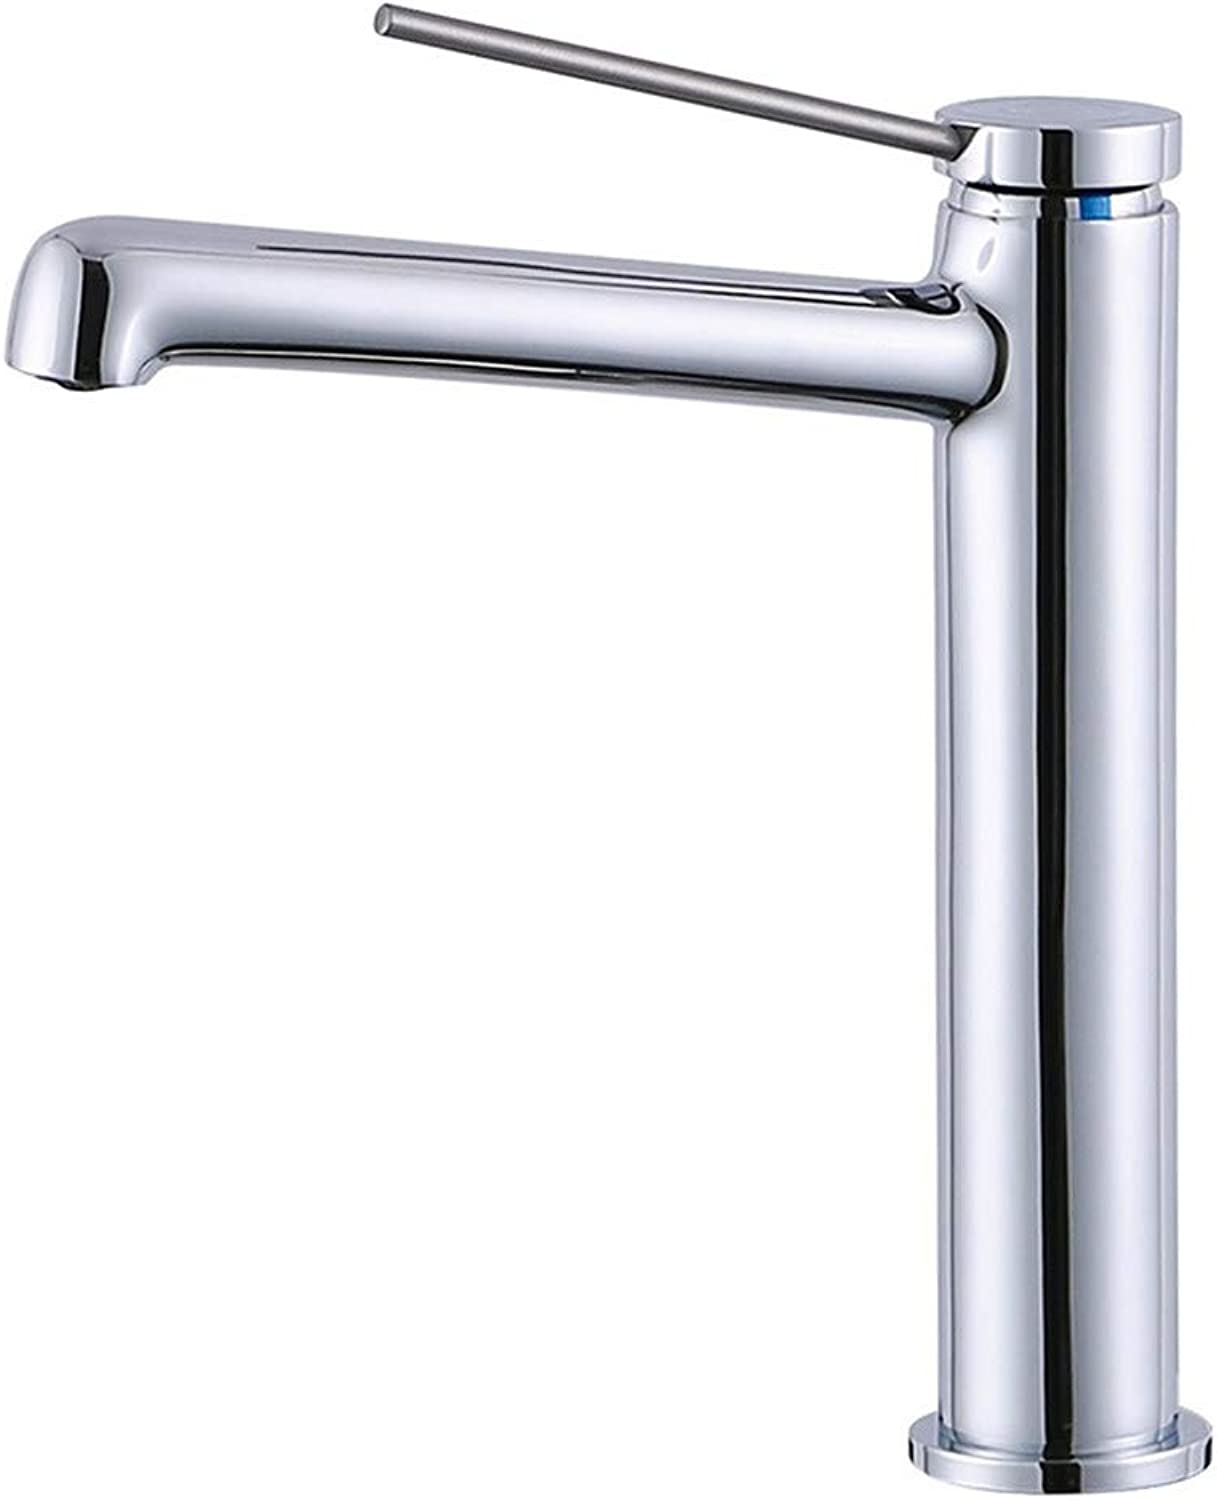 JONTON Taps Taps Taps Copper Chrome High Foot Long Mouth Faucet Single Handle Lift Open Hot And Cold Bathroom Basin Faucet